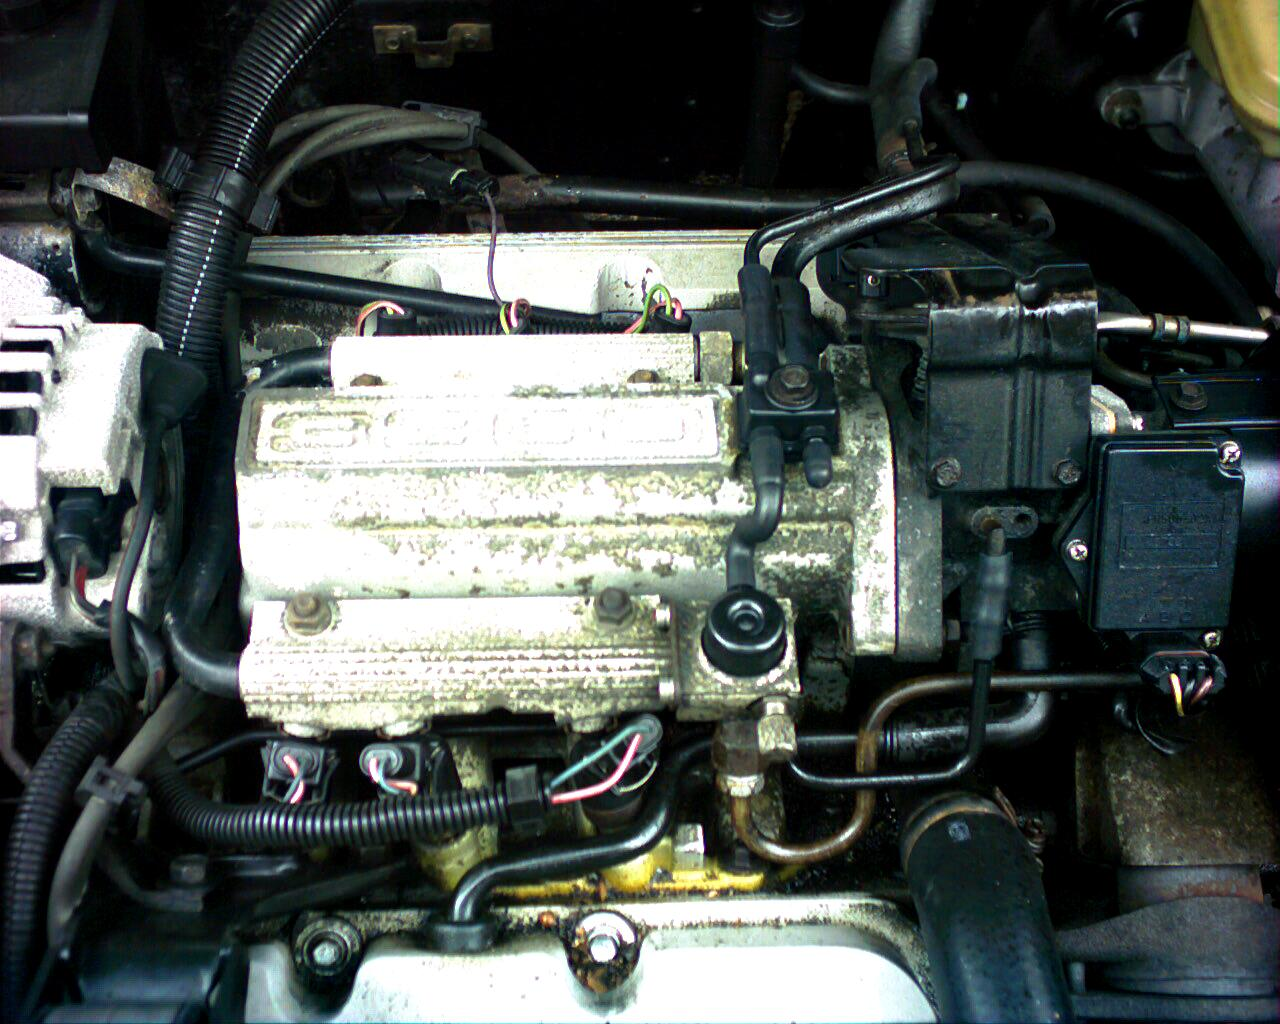 1989 Buick Century picture, engine